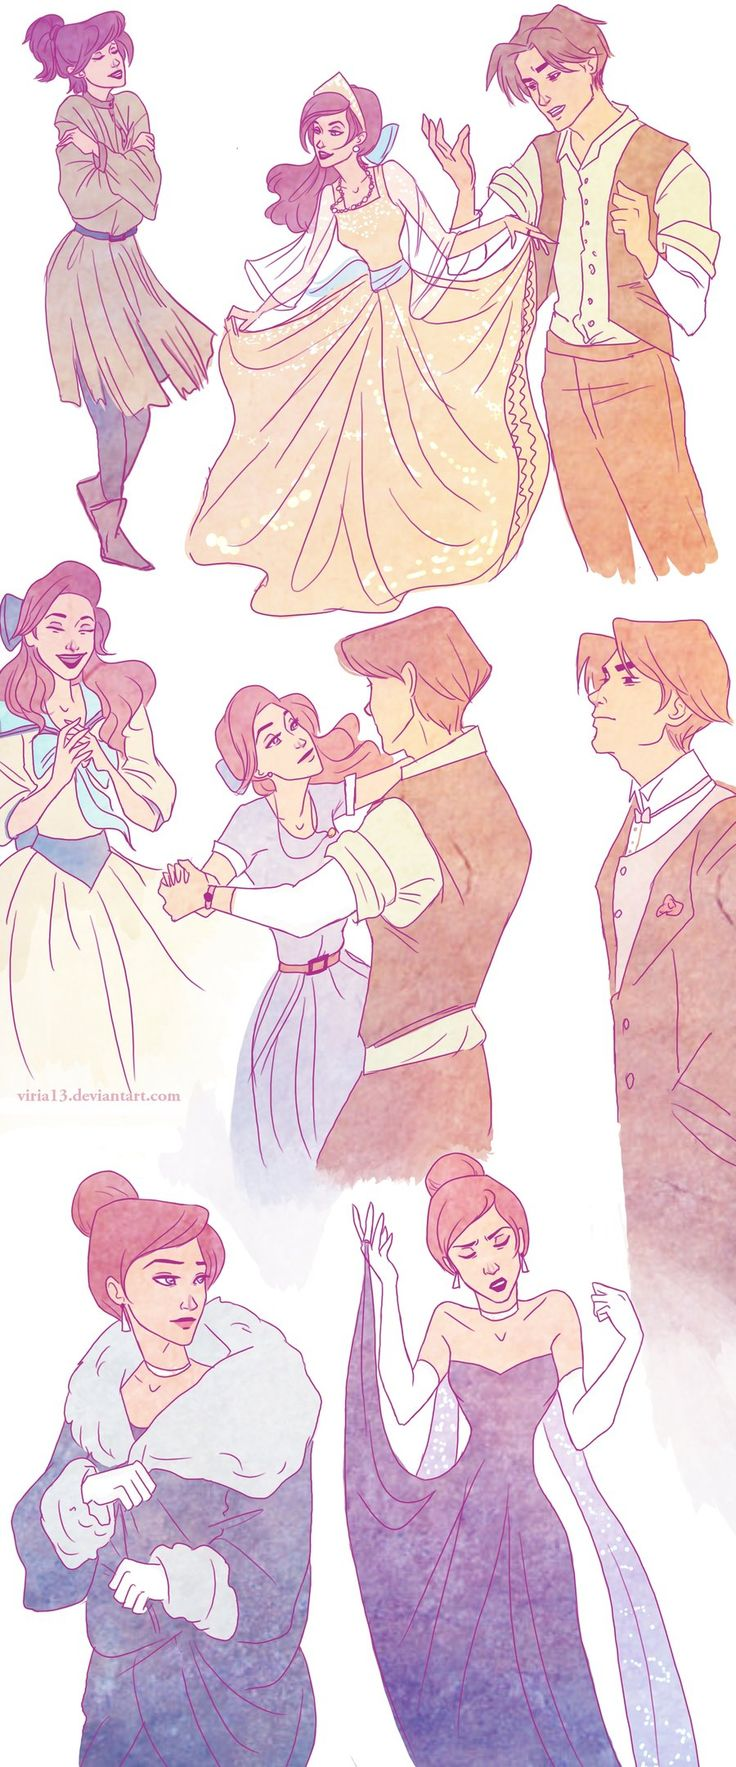 Anastasia - Not Disney, but absolutely PERFECT nonetheless.